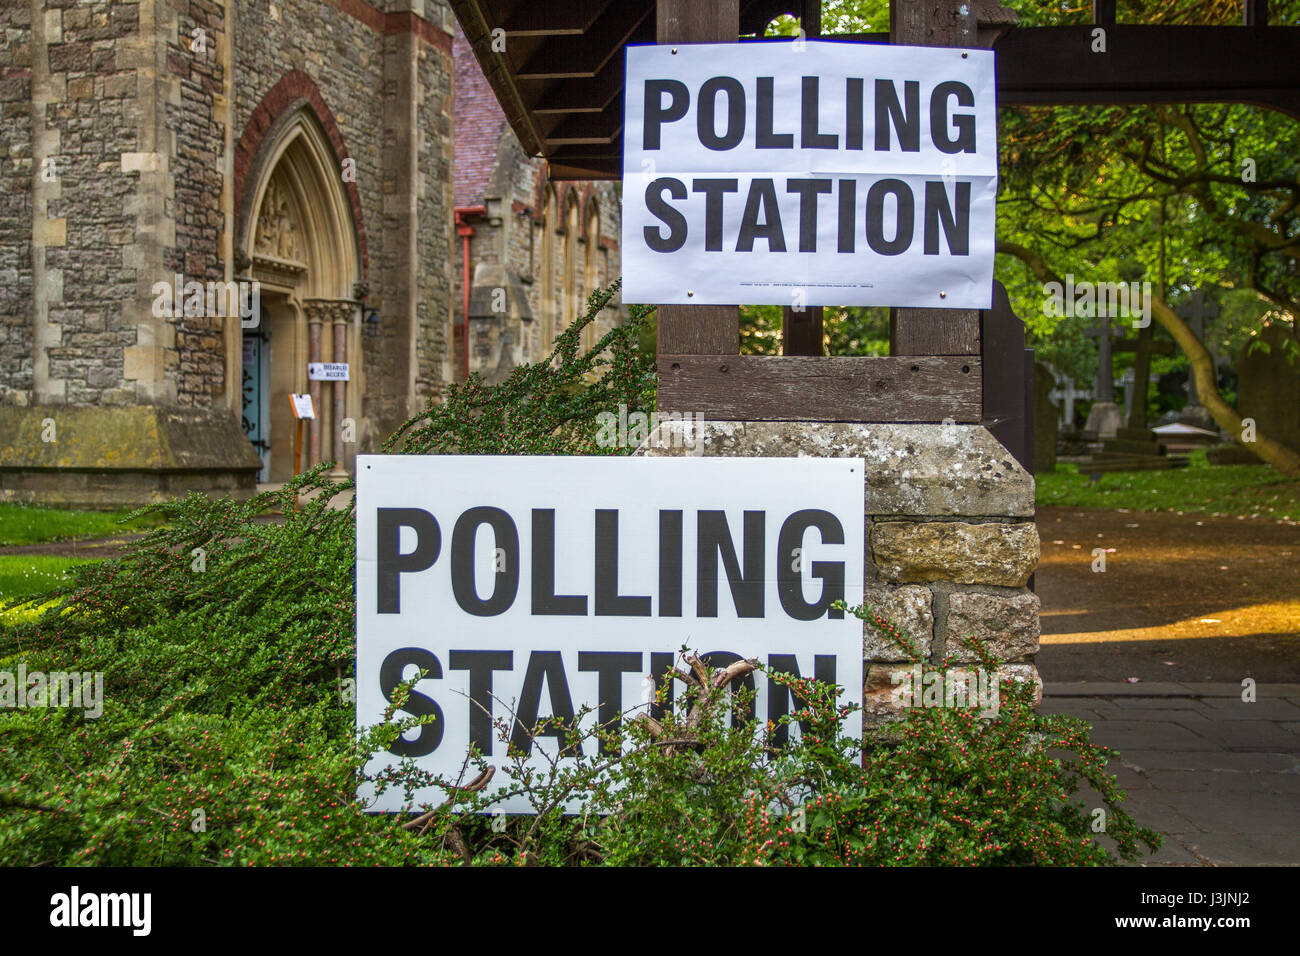 Polling poll station general election sign UK - Stock Image